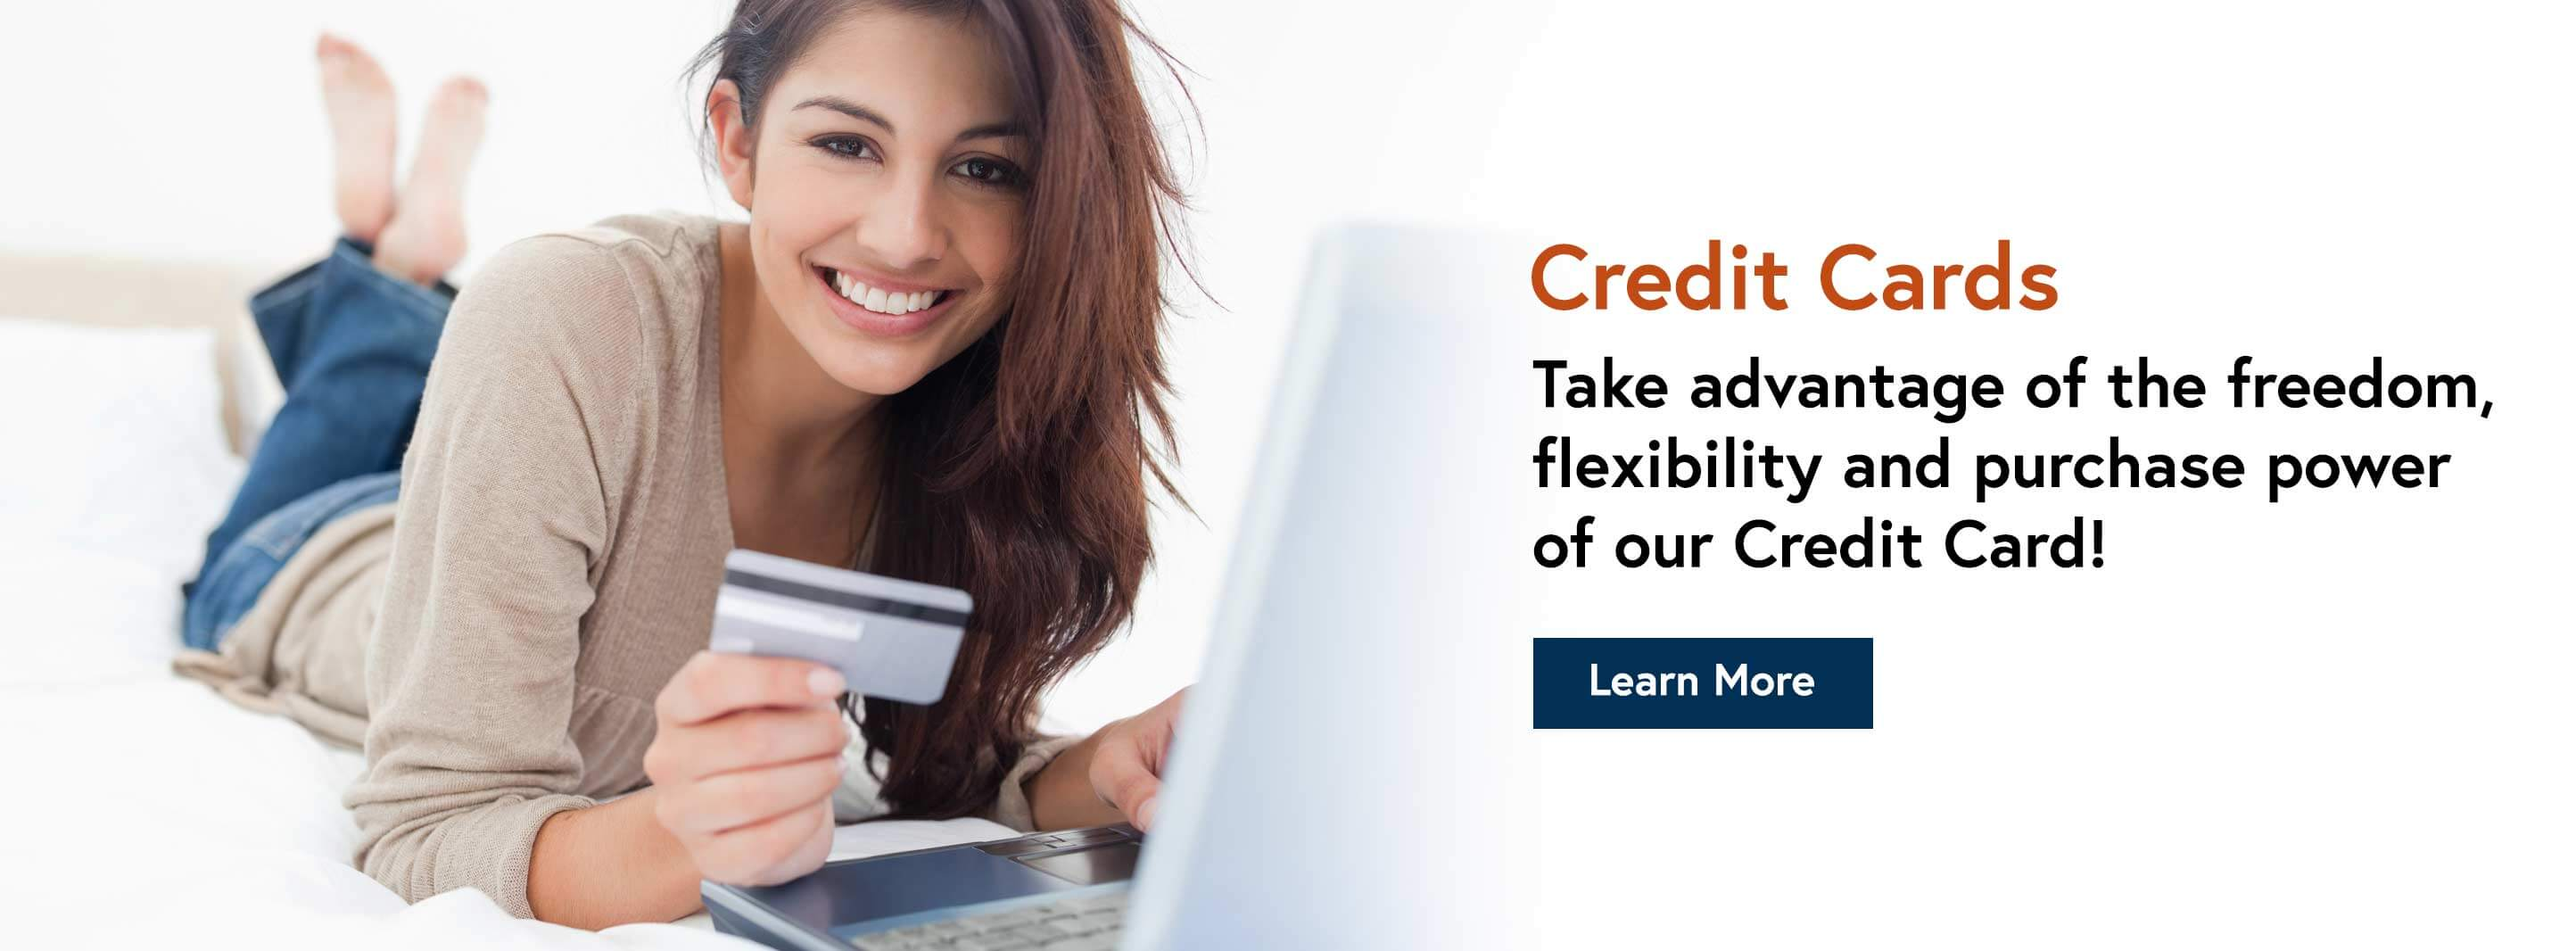 Credit Cards Take advantage of the freedom, flexibility and purchase power of our Credit Card! Learn More.